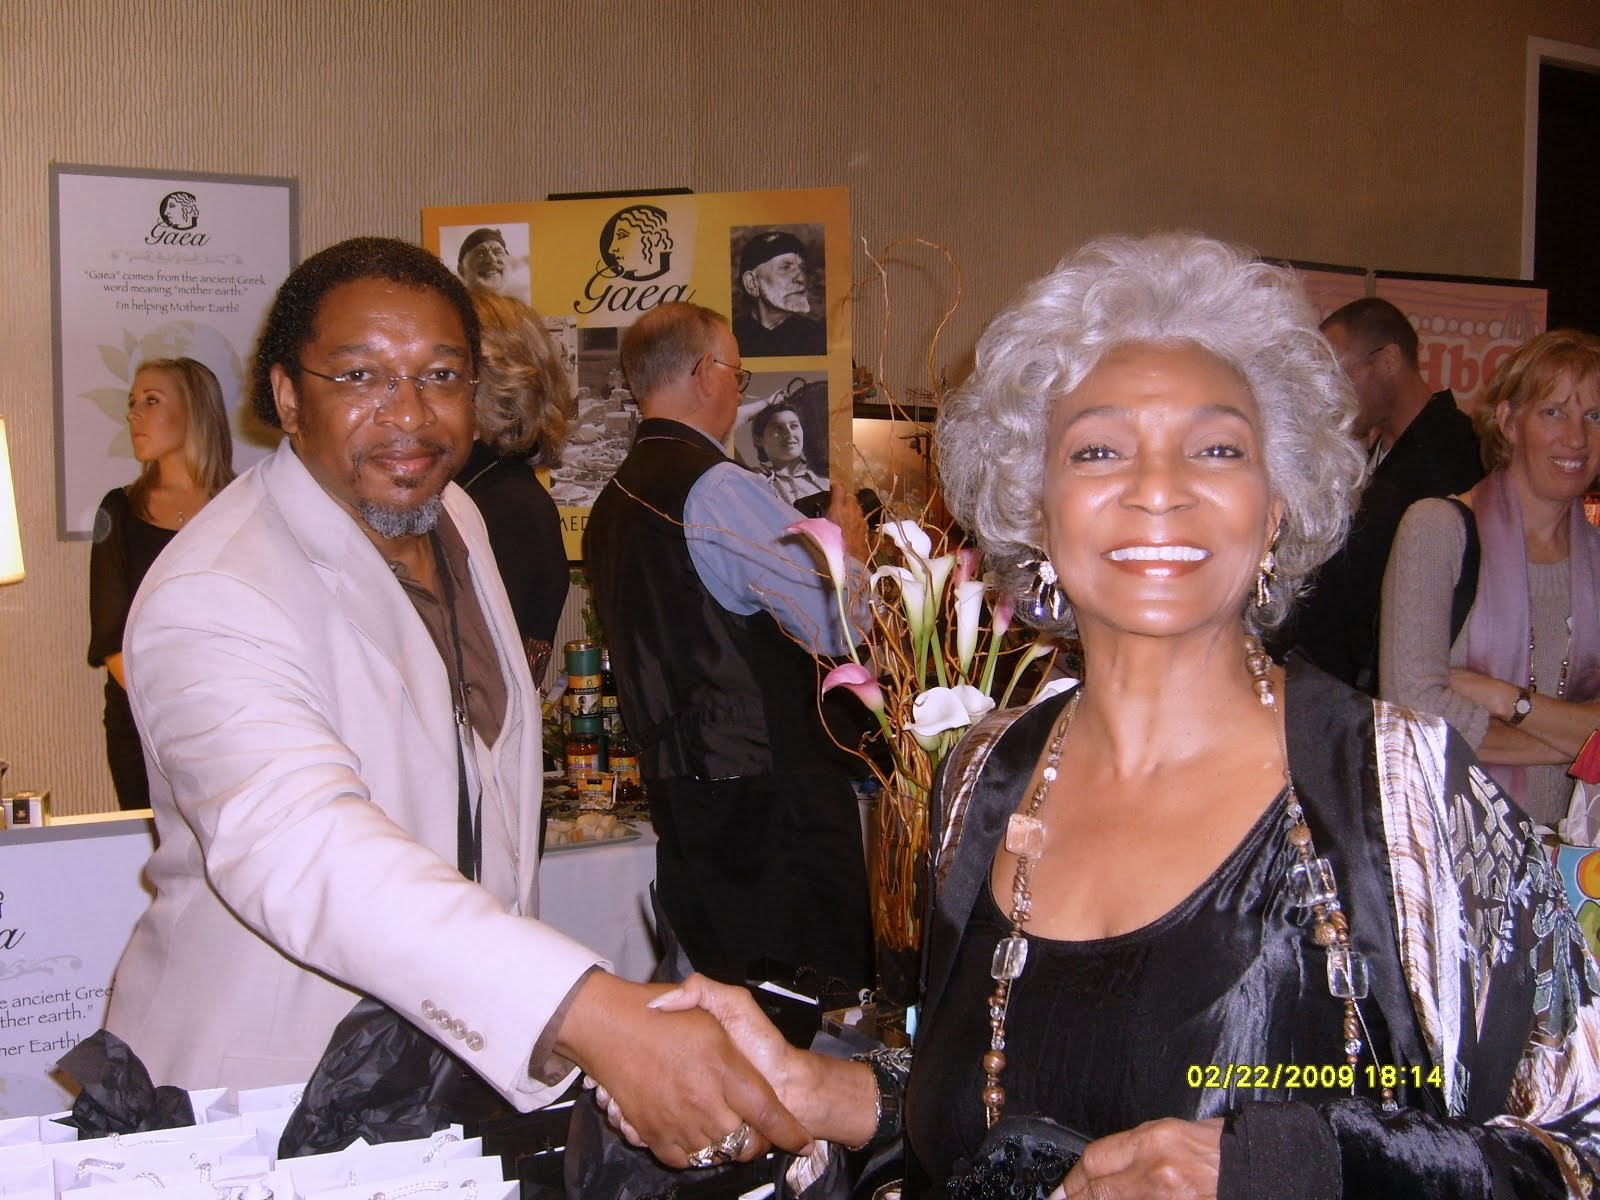 Nichelle Nichols of Star Trek